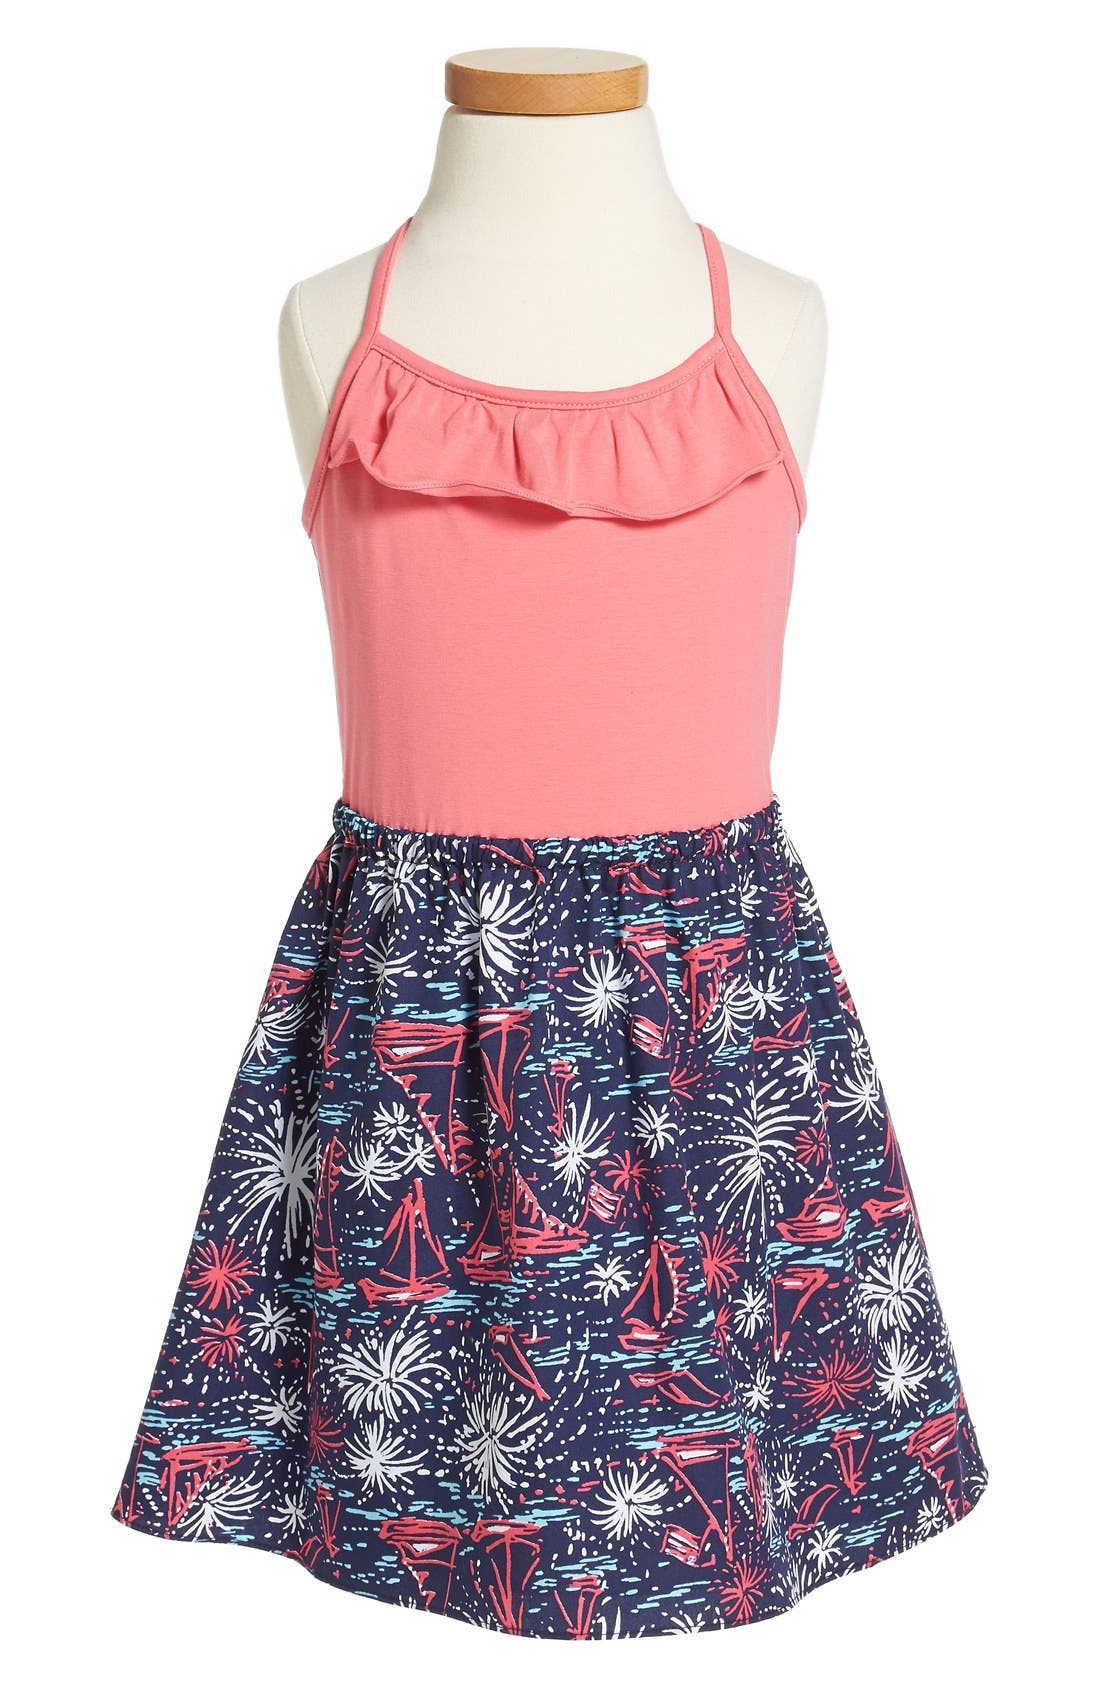 Main Image - Lilly Pulitzer® 'Dory' Glow-in-the-Dark Print Fit & Flare Sundress (Little Girls & Big Girls)